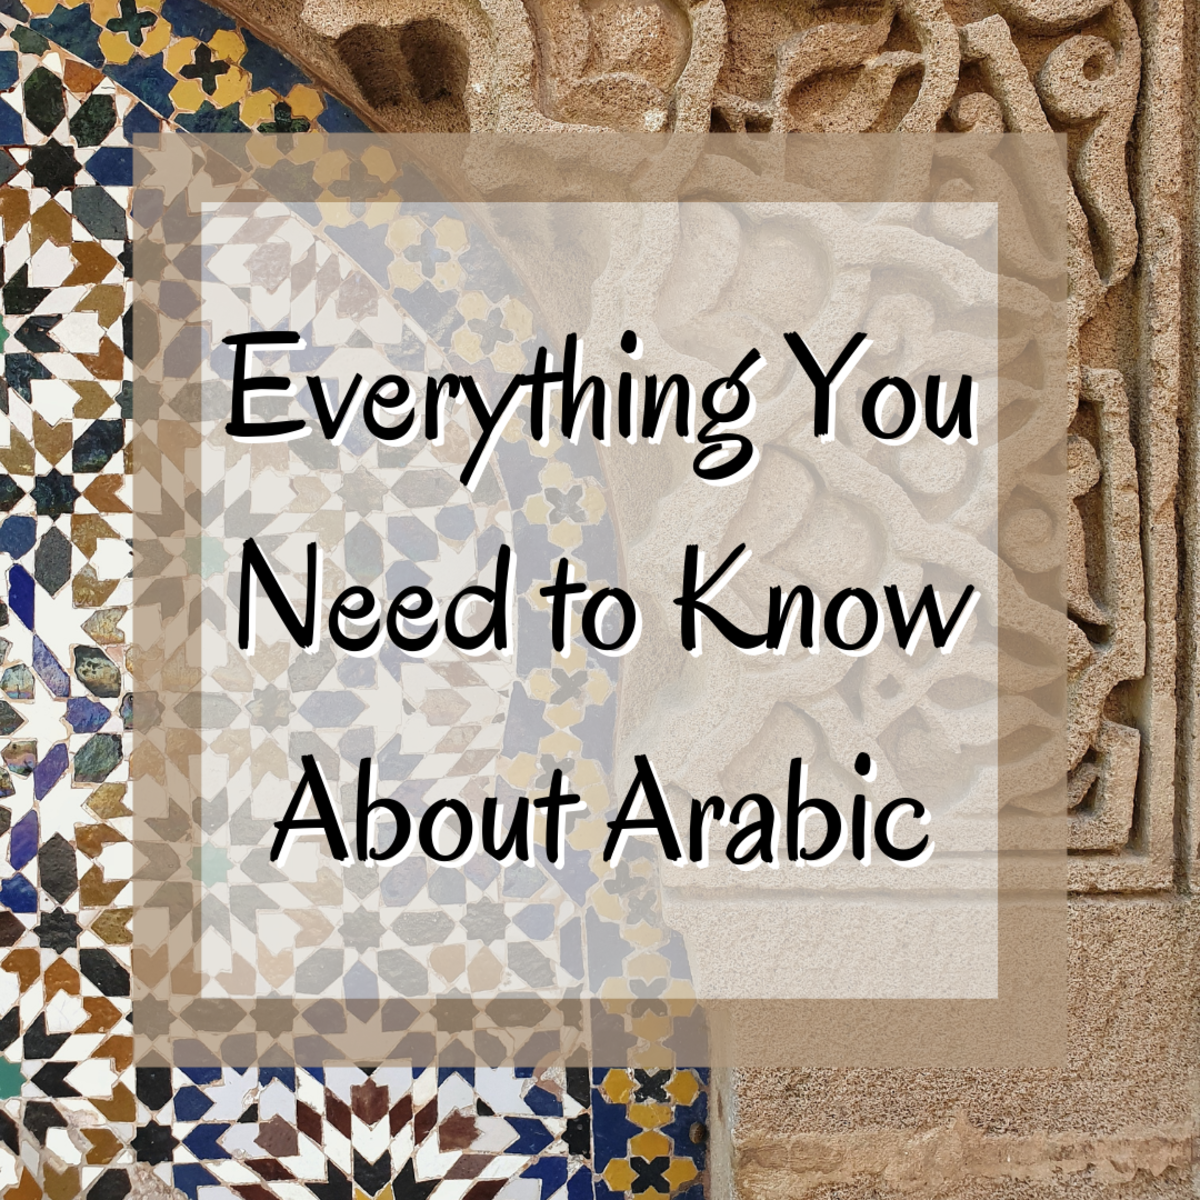 Learn a plethora of helpful and interesting facts about the Arabic language.